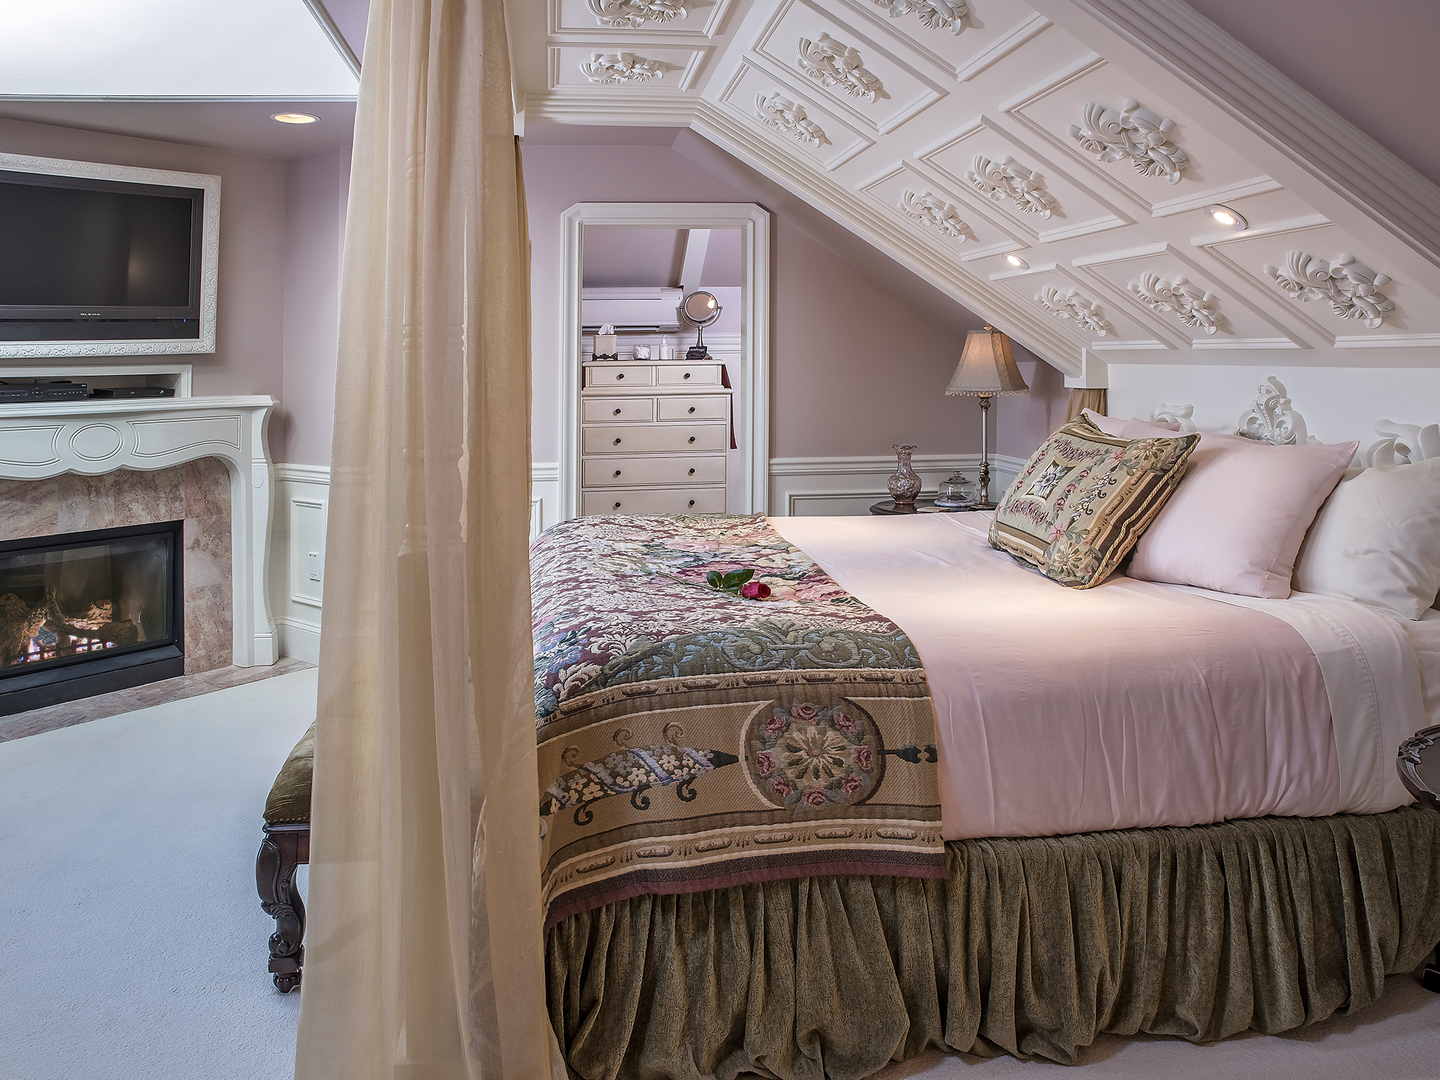 A bedroom with a bed and a fireplace at Cameo Heights Mansion.